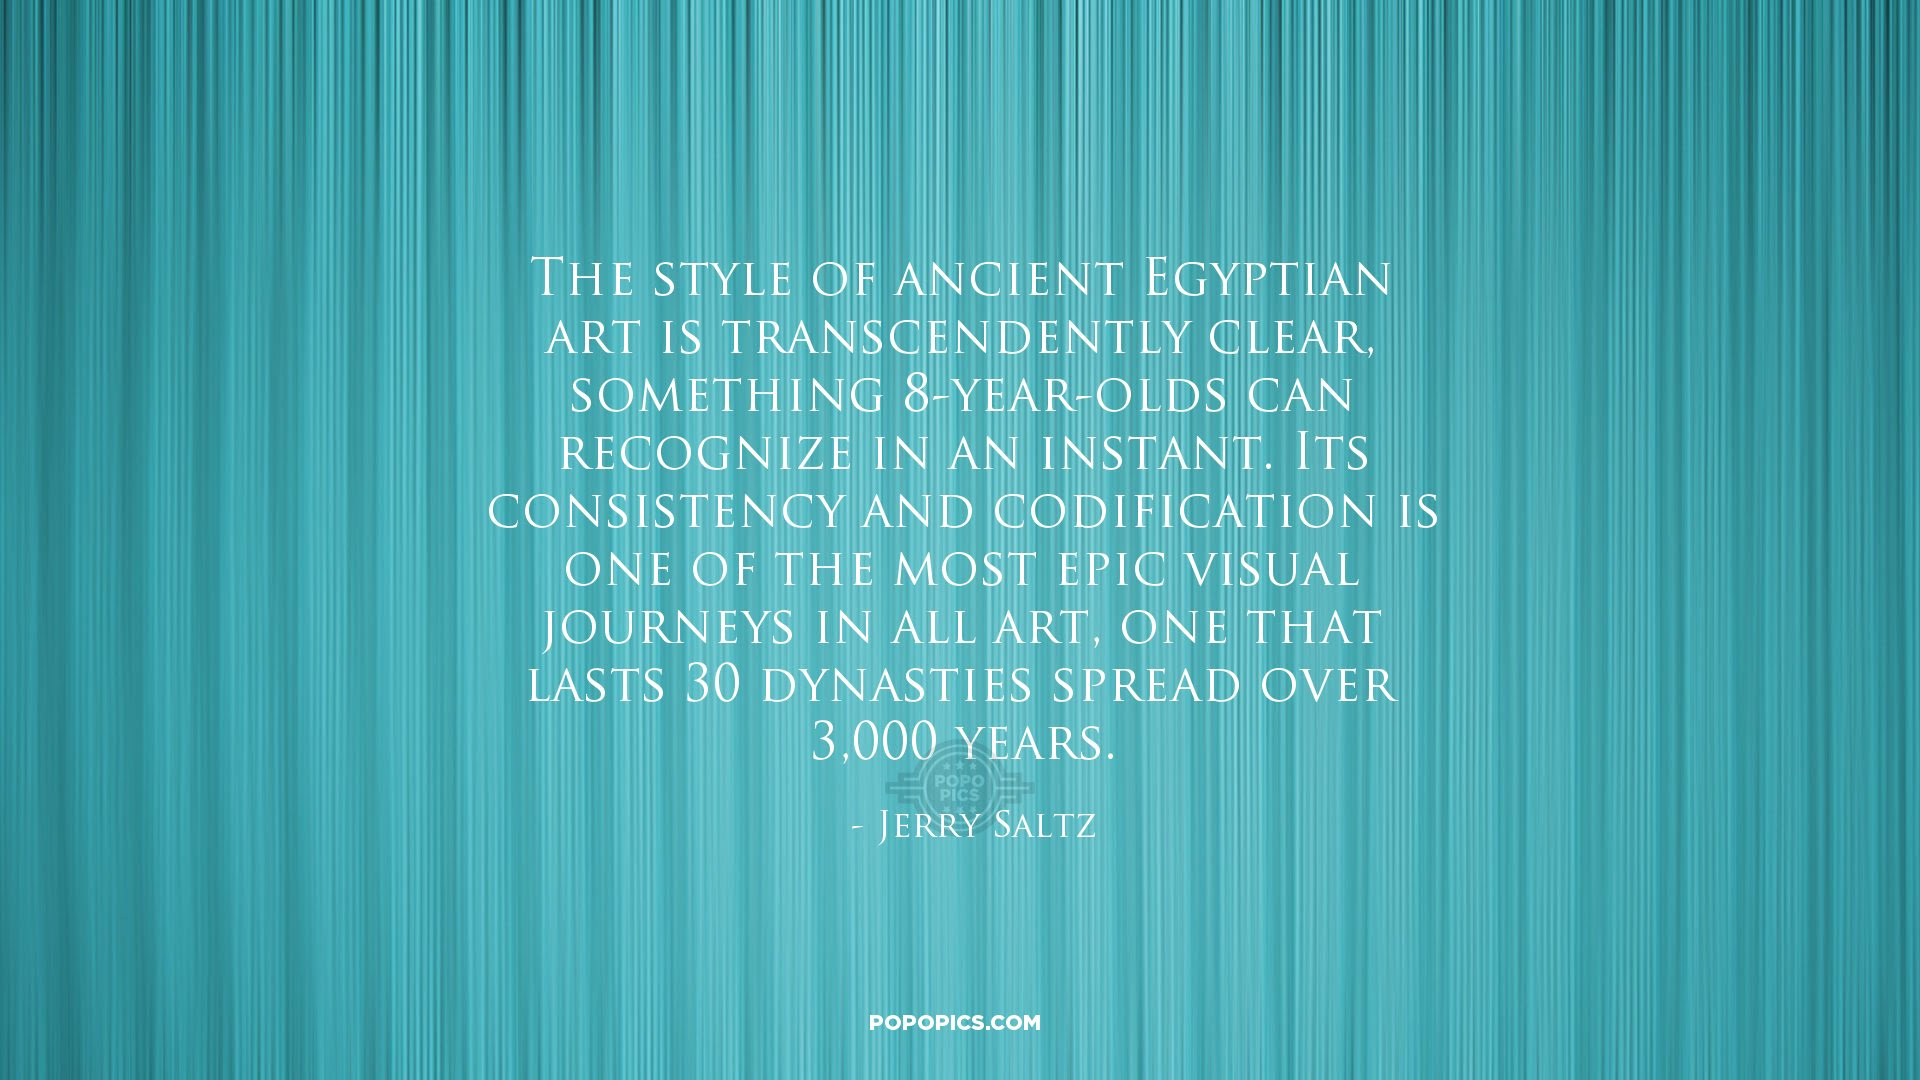 The Style Of Ancient Egyptian Art Is Quotes By Jerry Saltz